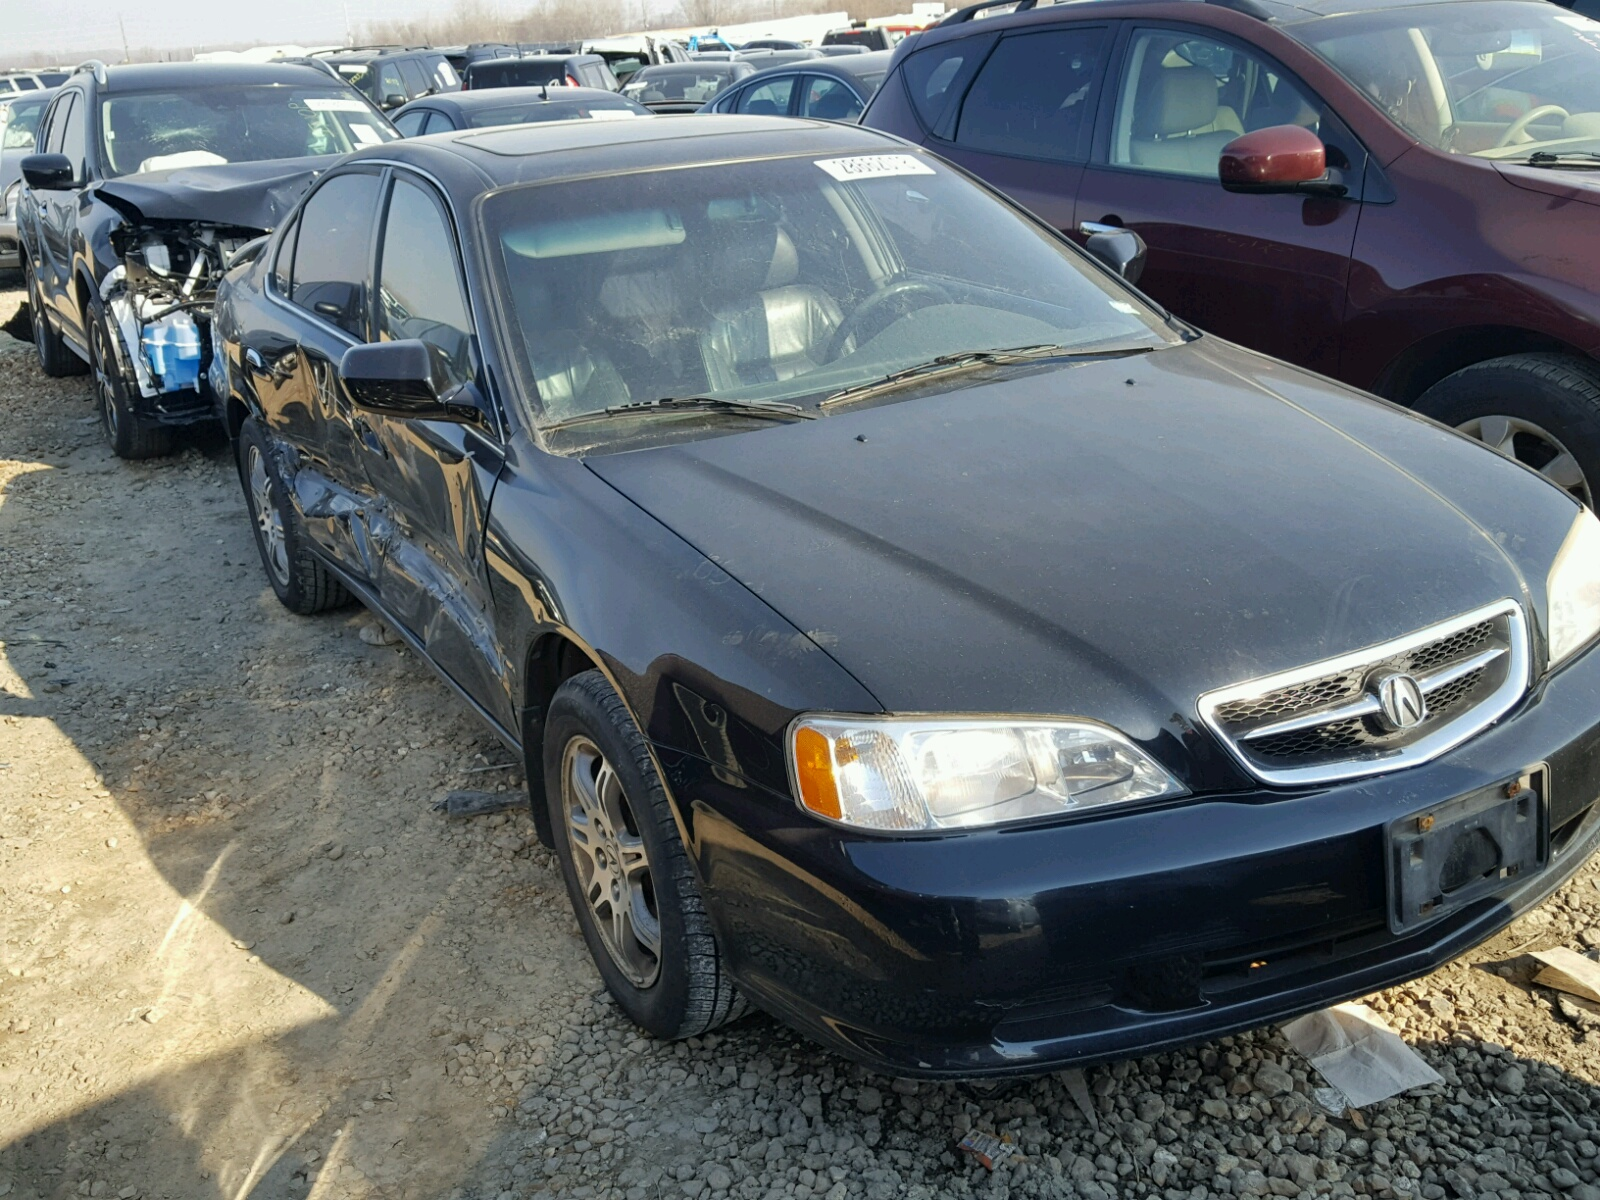 co salvage south denver on auto carfinder title lot auctions tl gray acura online right sale en view in for copart